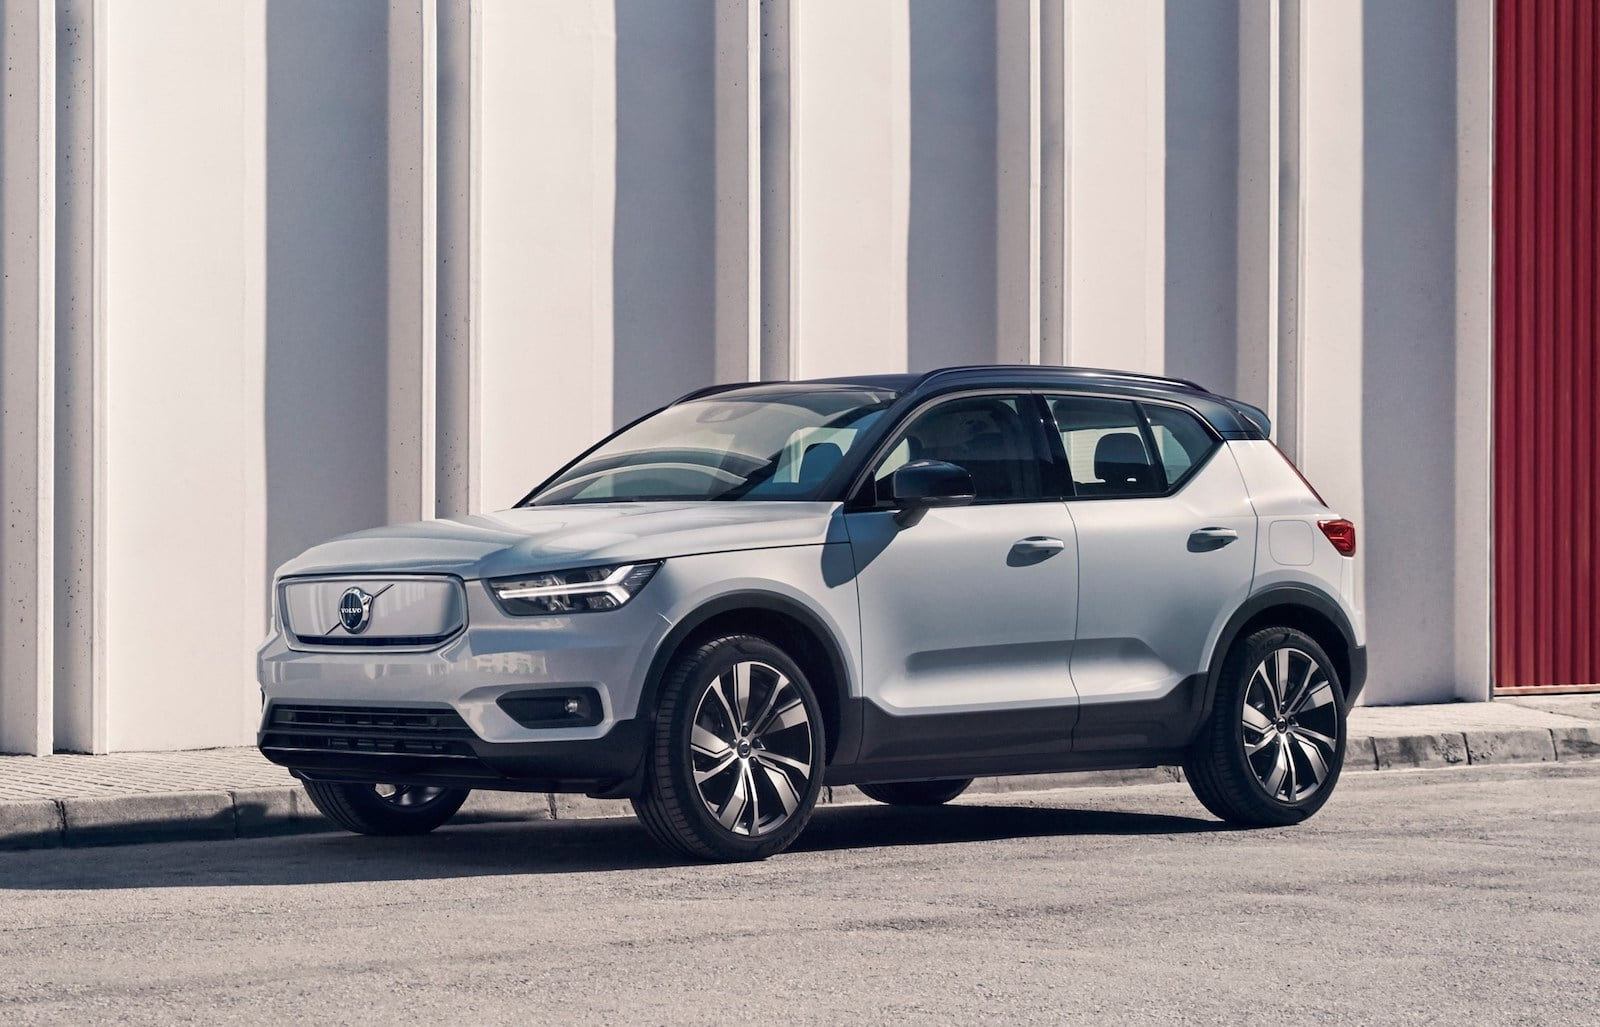 volvo moves forward with plans to build batteries thedetroitbureau com volvo moves forward with plans to build